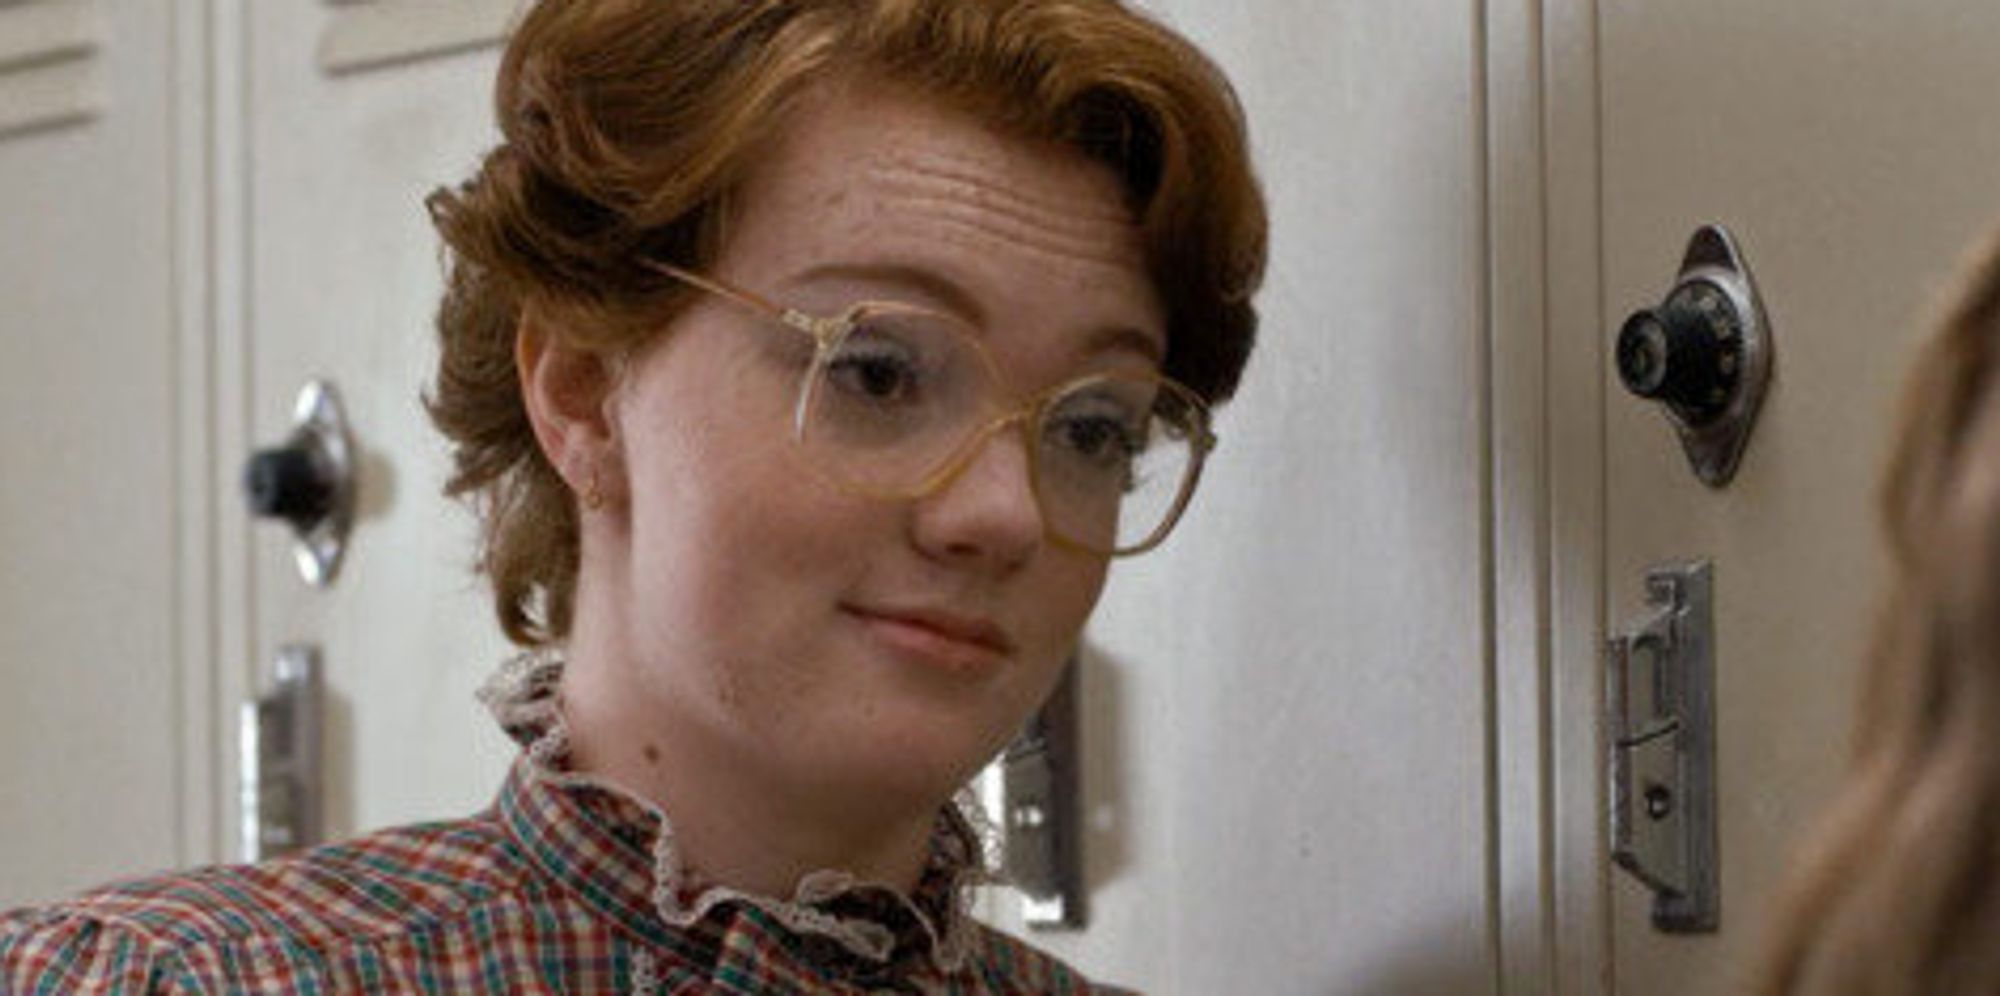 pimpandhost.com pic ru 14 gracel For The Last Time, Barb From 'Stranger Things' Is Dead